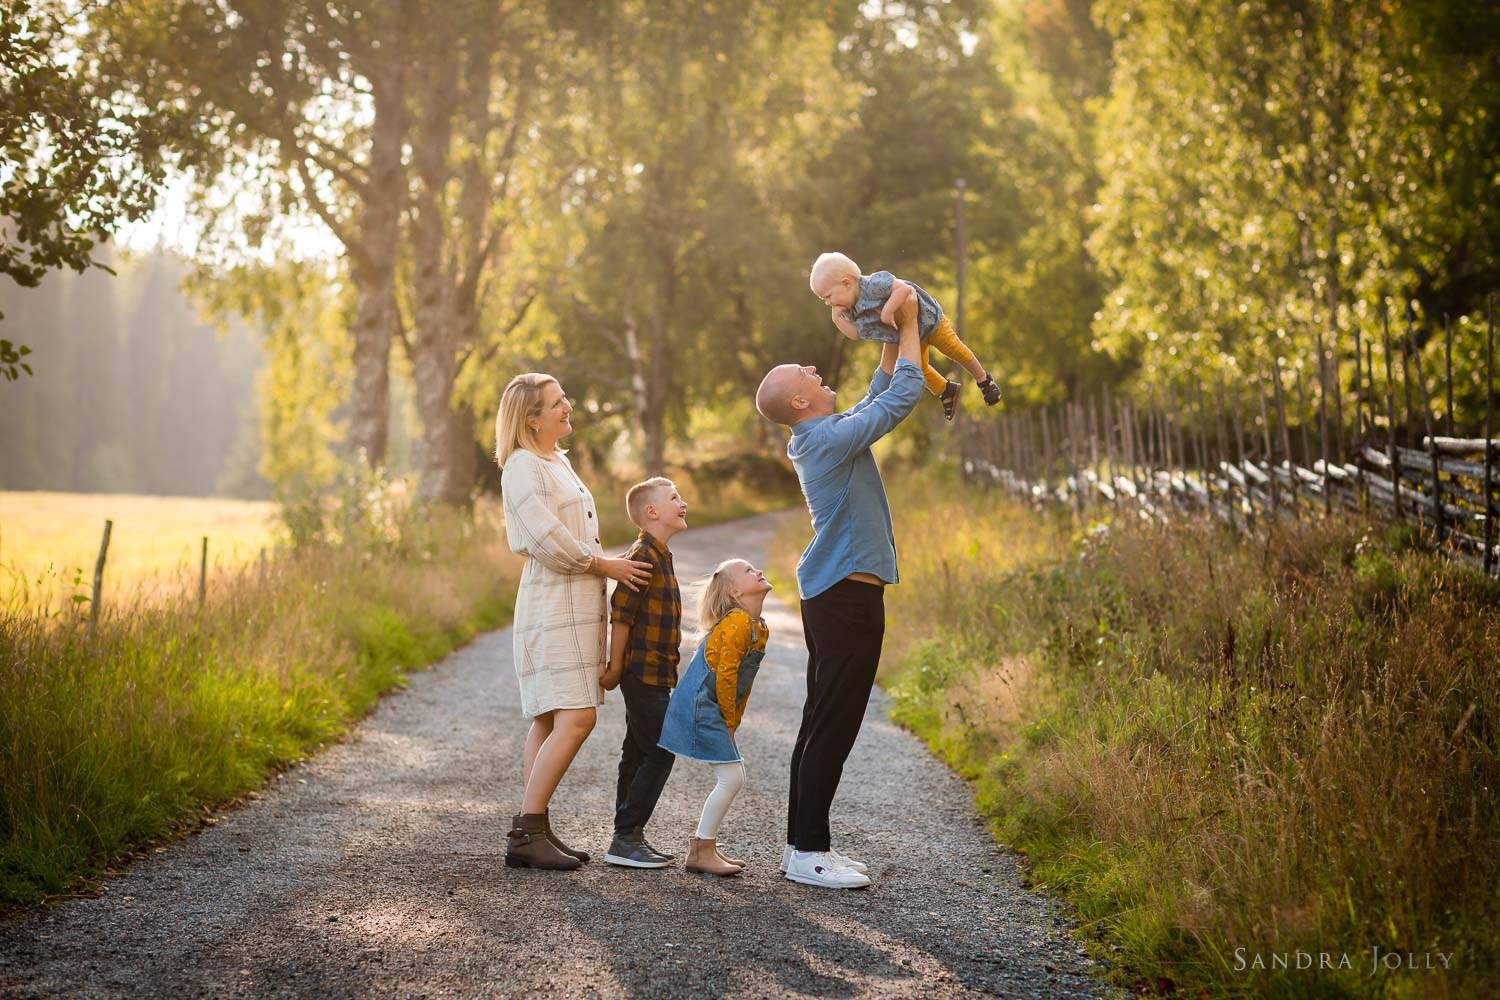 summer-family-photo-session-in-stockholm-by-familjefotoraf-sandra-jolly.jpg